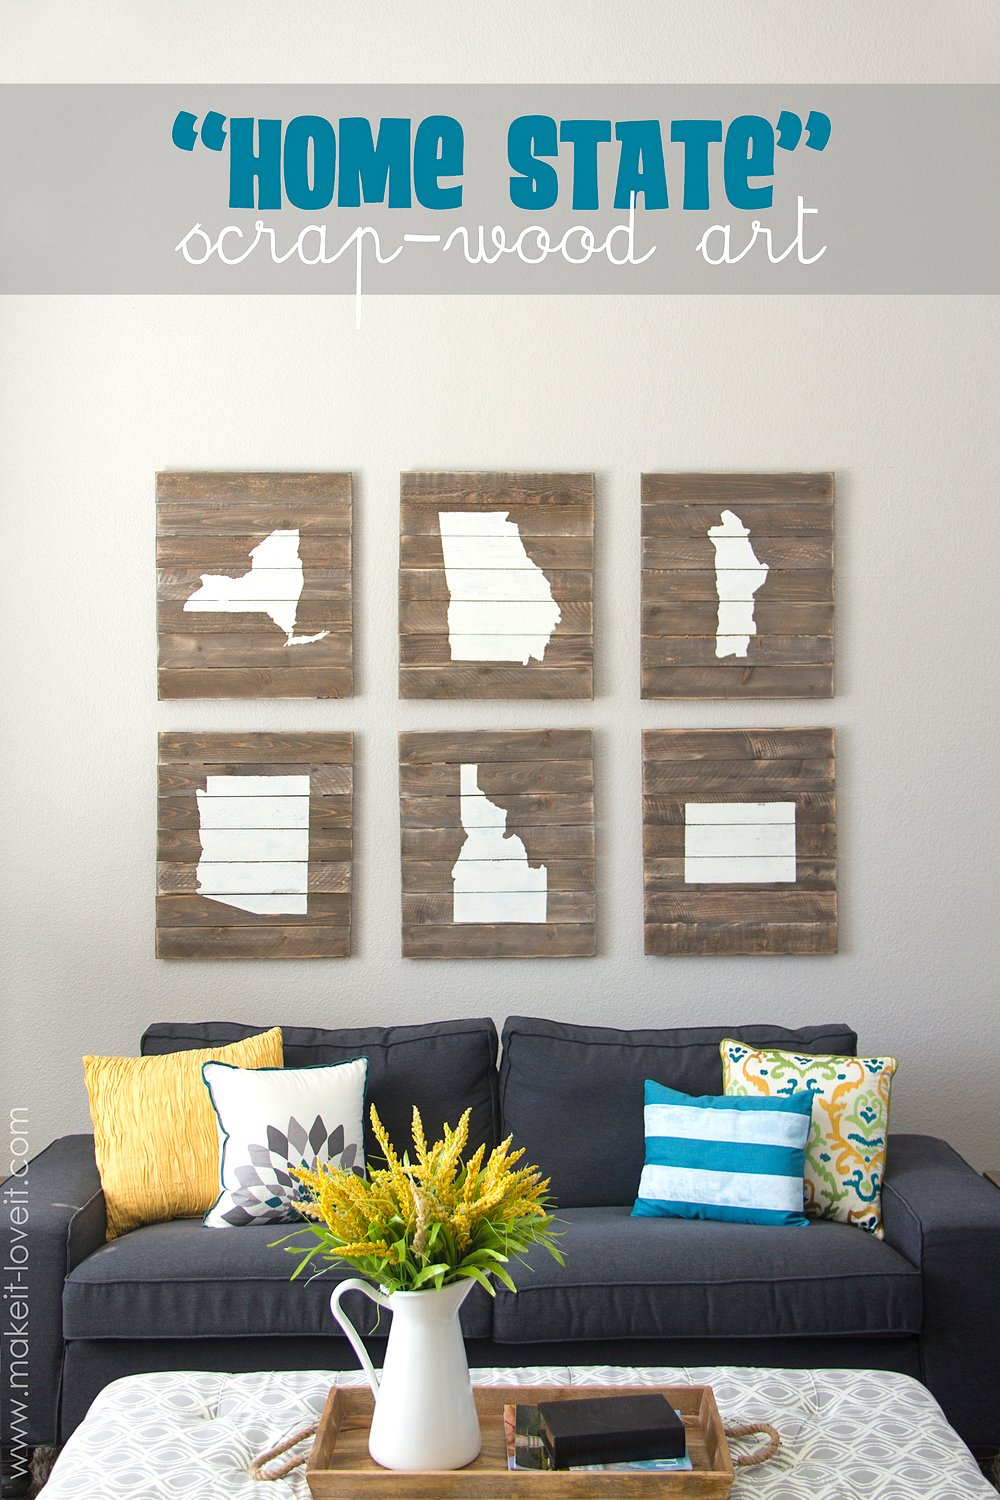 Enchanting How To Make Wall Decor At Home Images Best